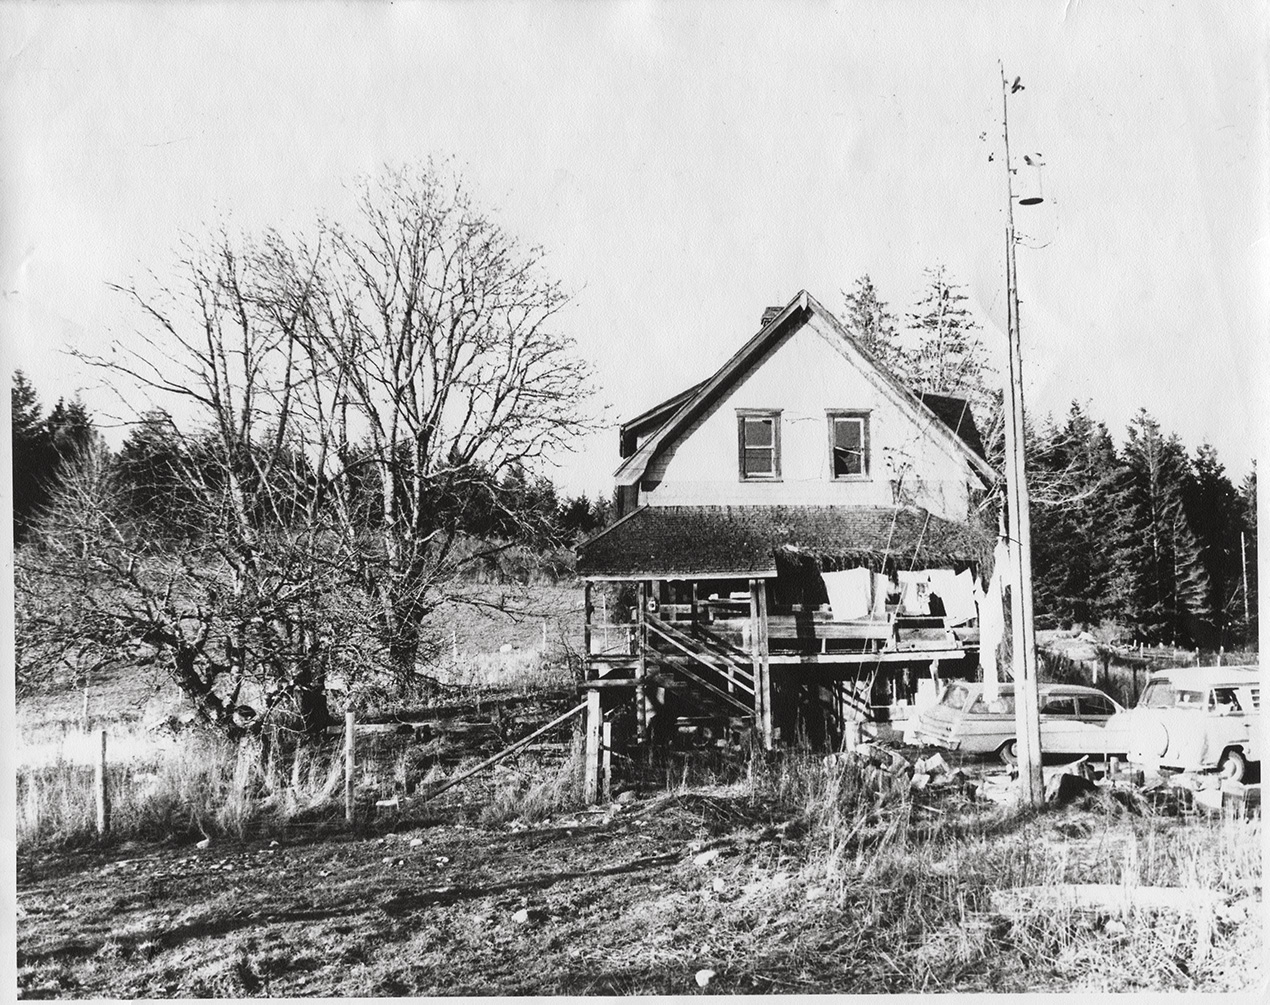 The original house. On the location of the present day Gatehouse,(note the cars).